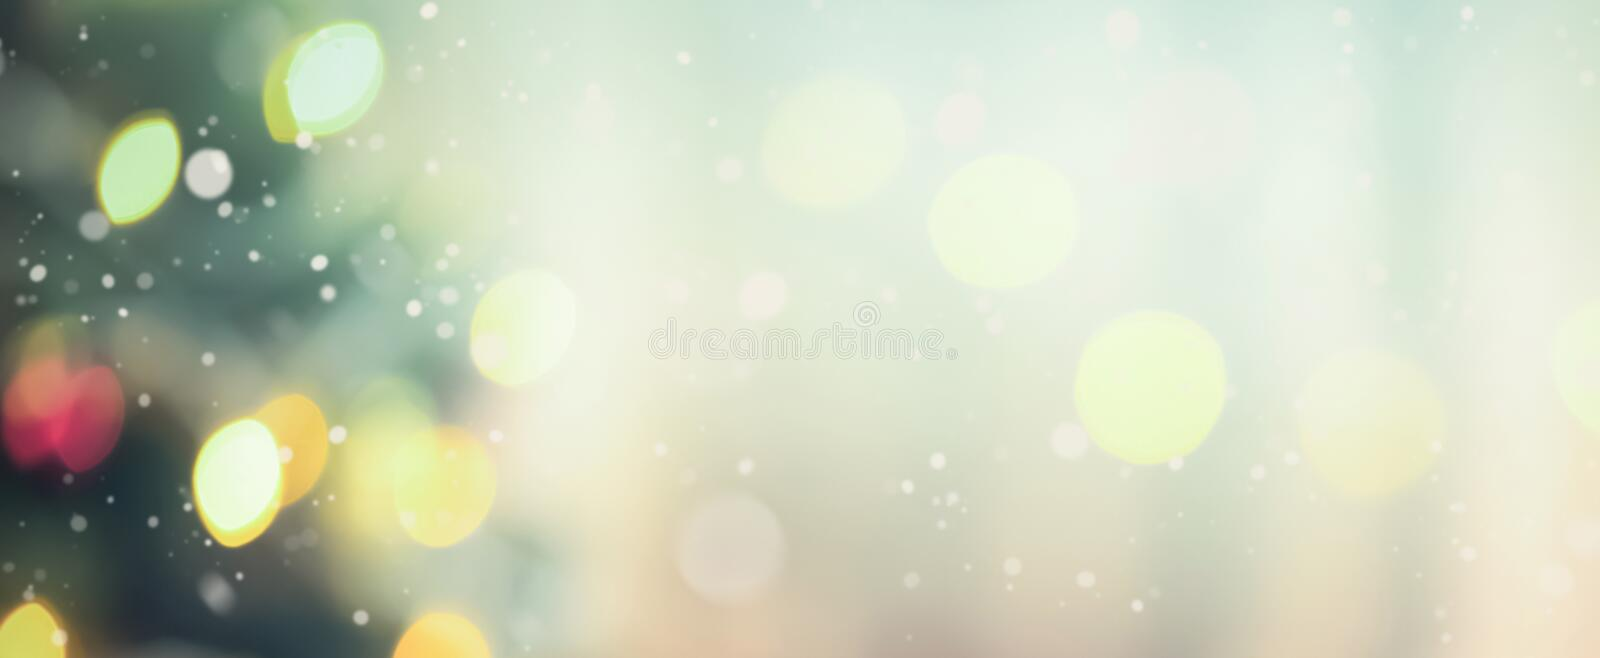 Blur Christmas tree with bokeh from decorative light stock images